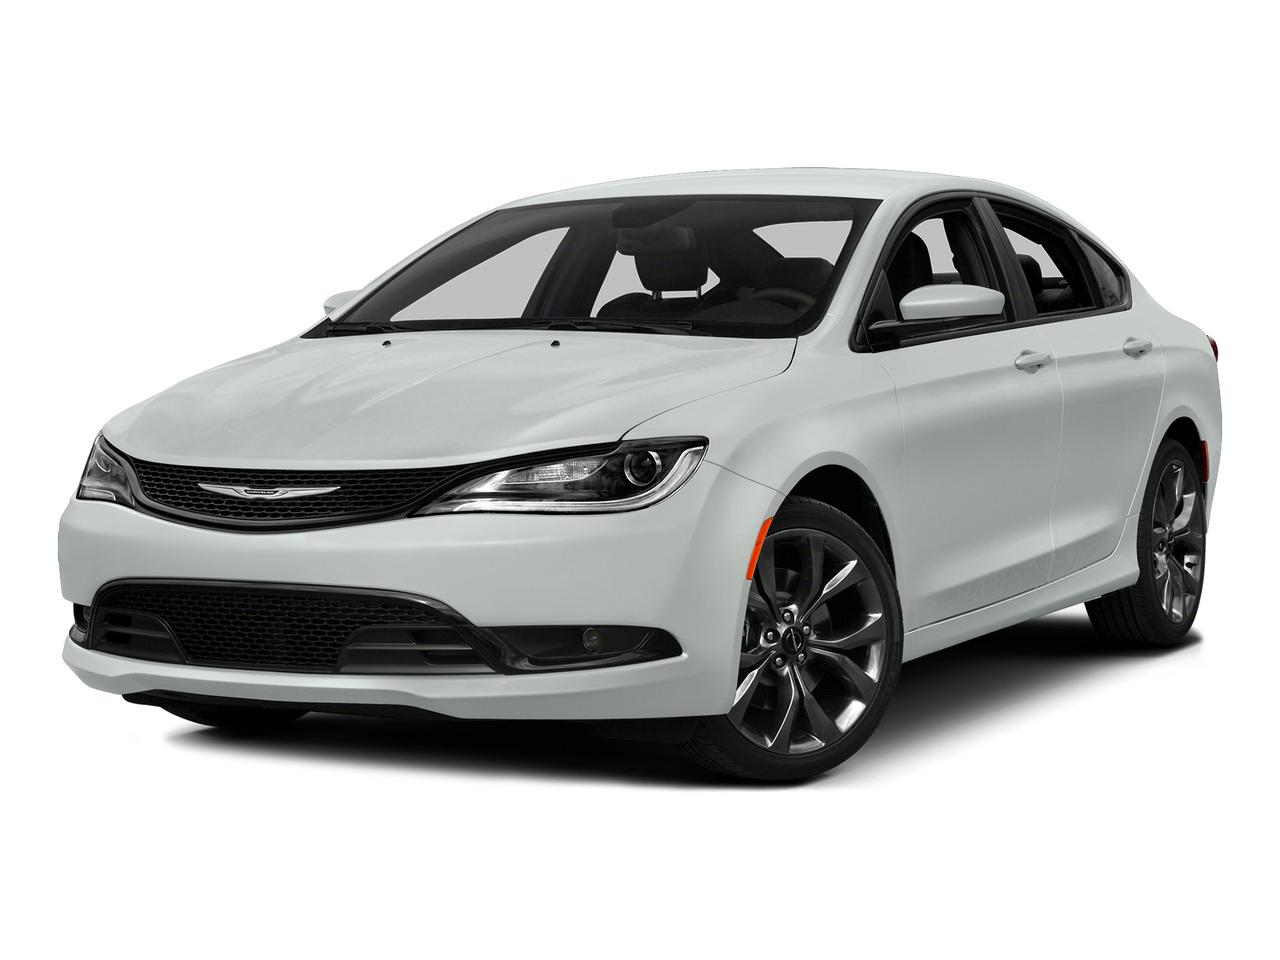 2015 Chrysler 200 Vehicle Photo in San Antonio, TX 78254